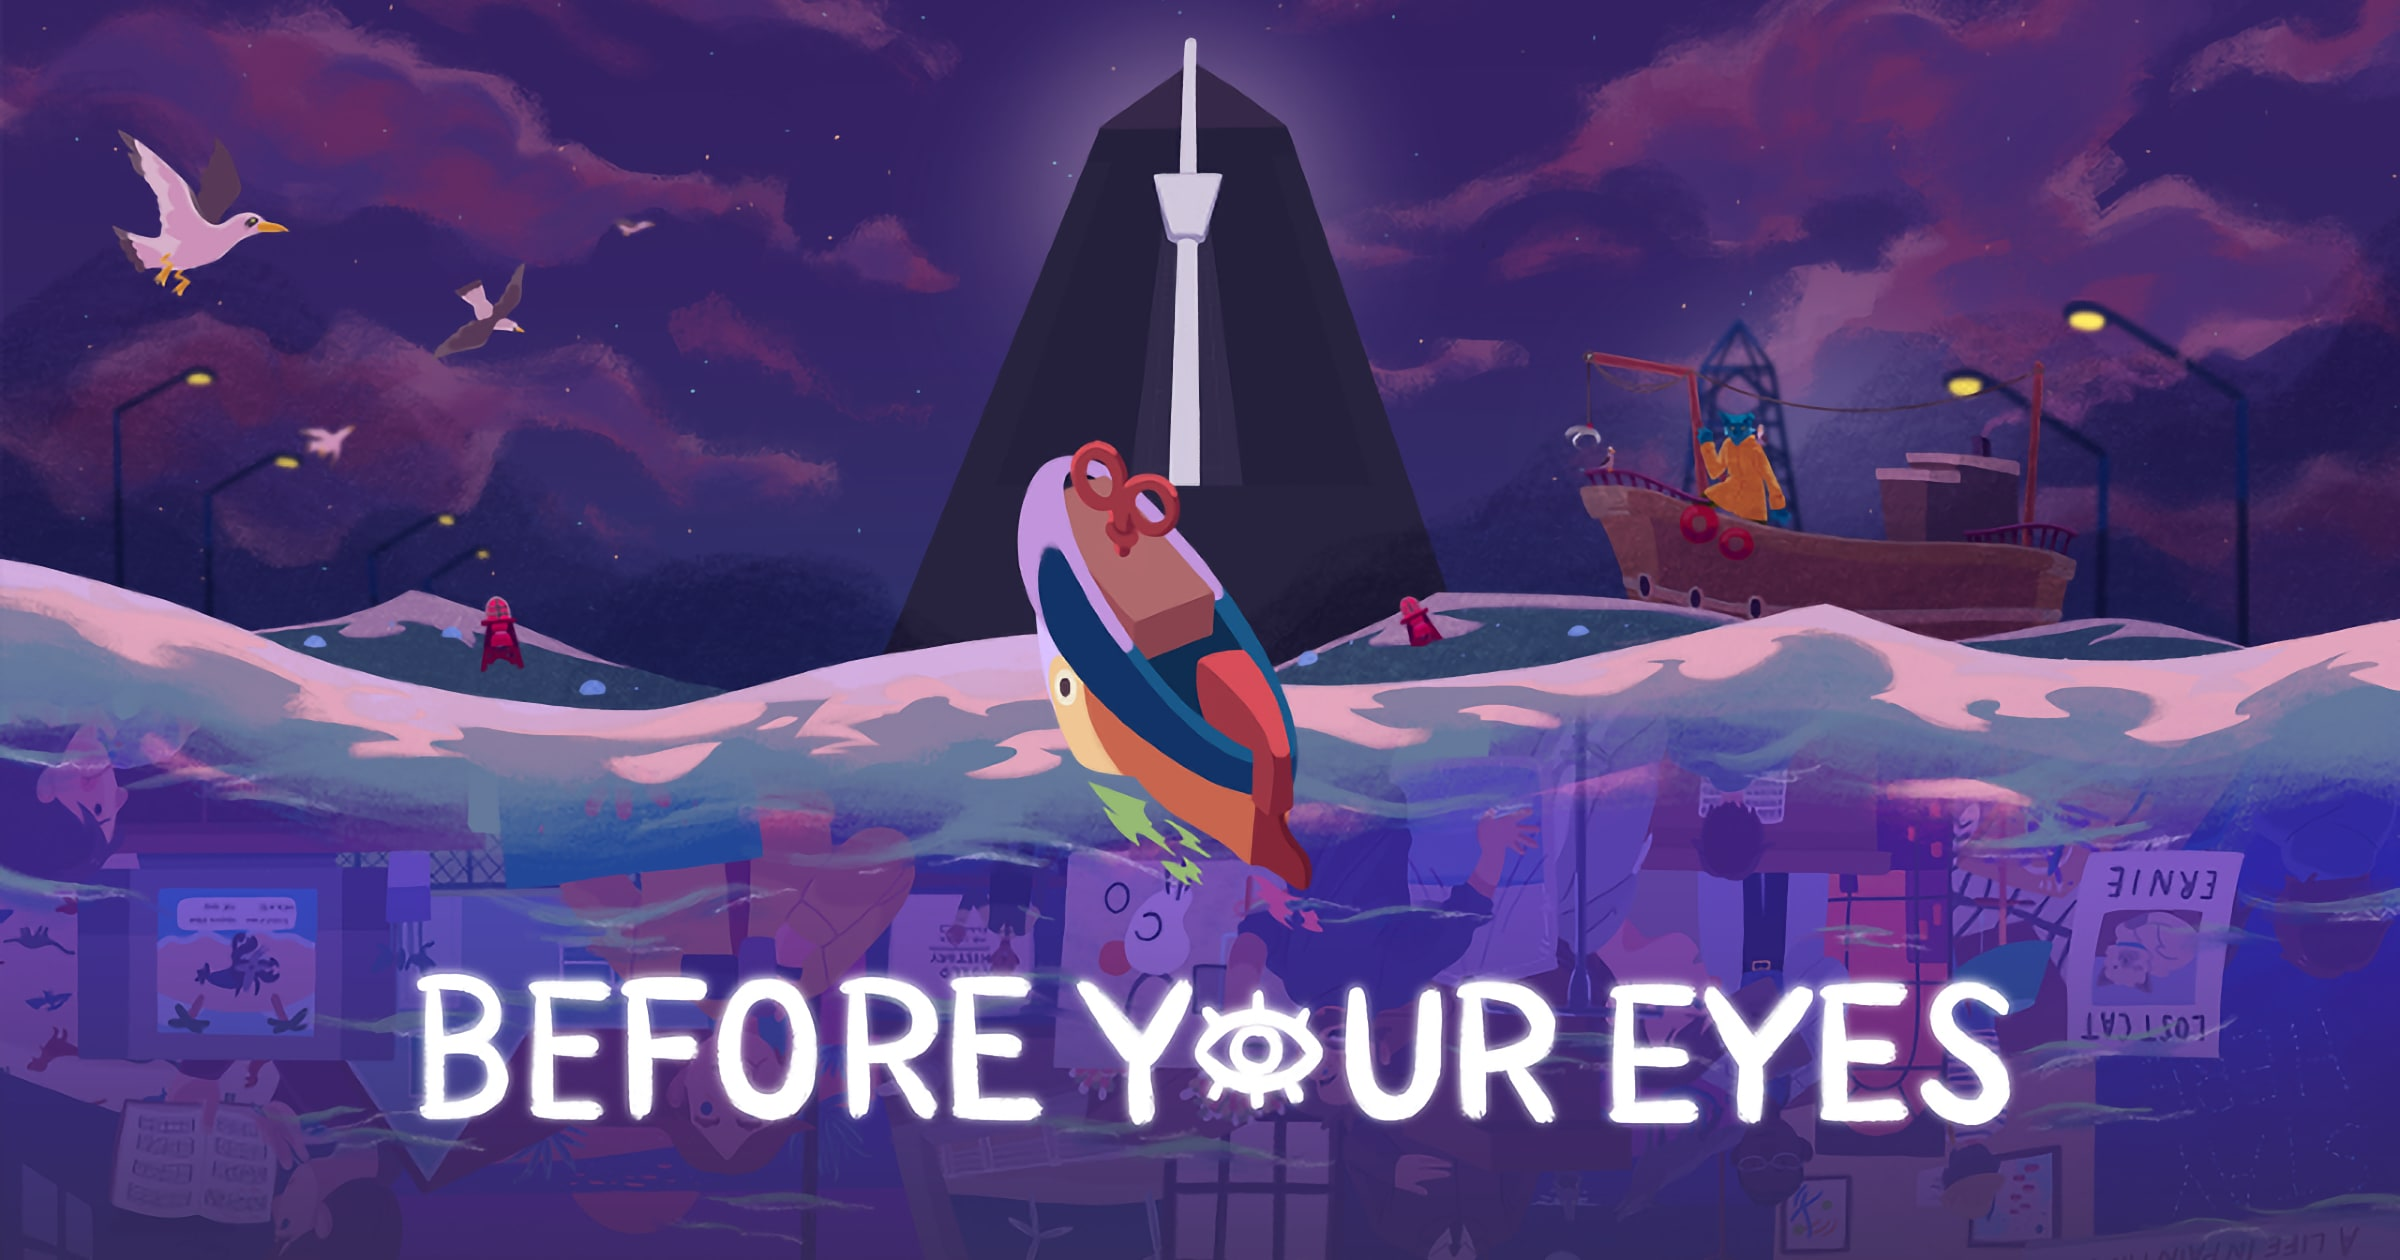 'Before Your Eyes' From GoodByeWorld Games Comes to Mac